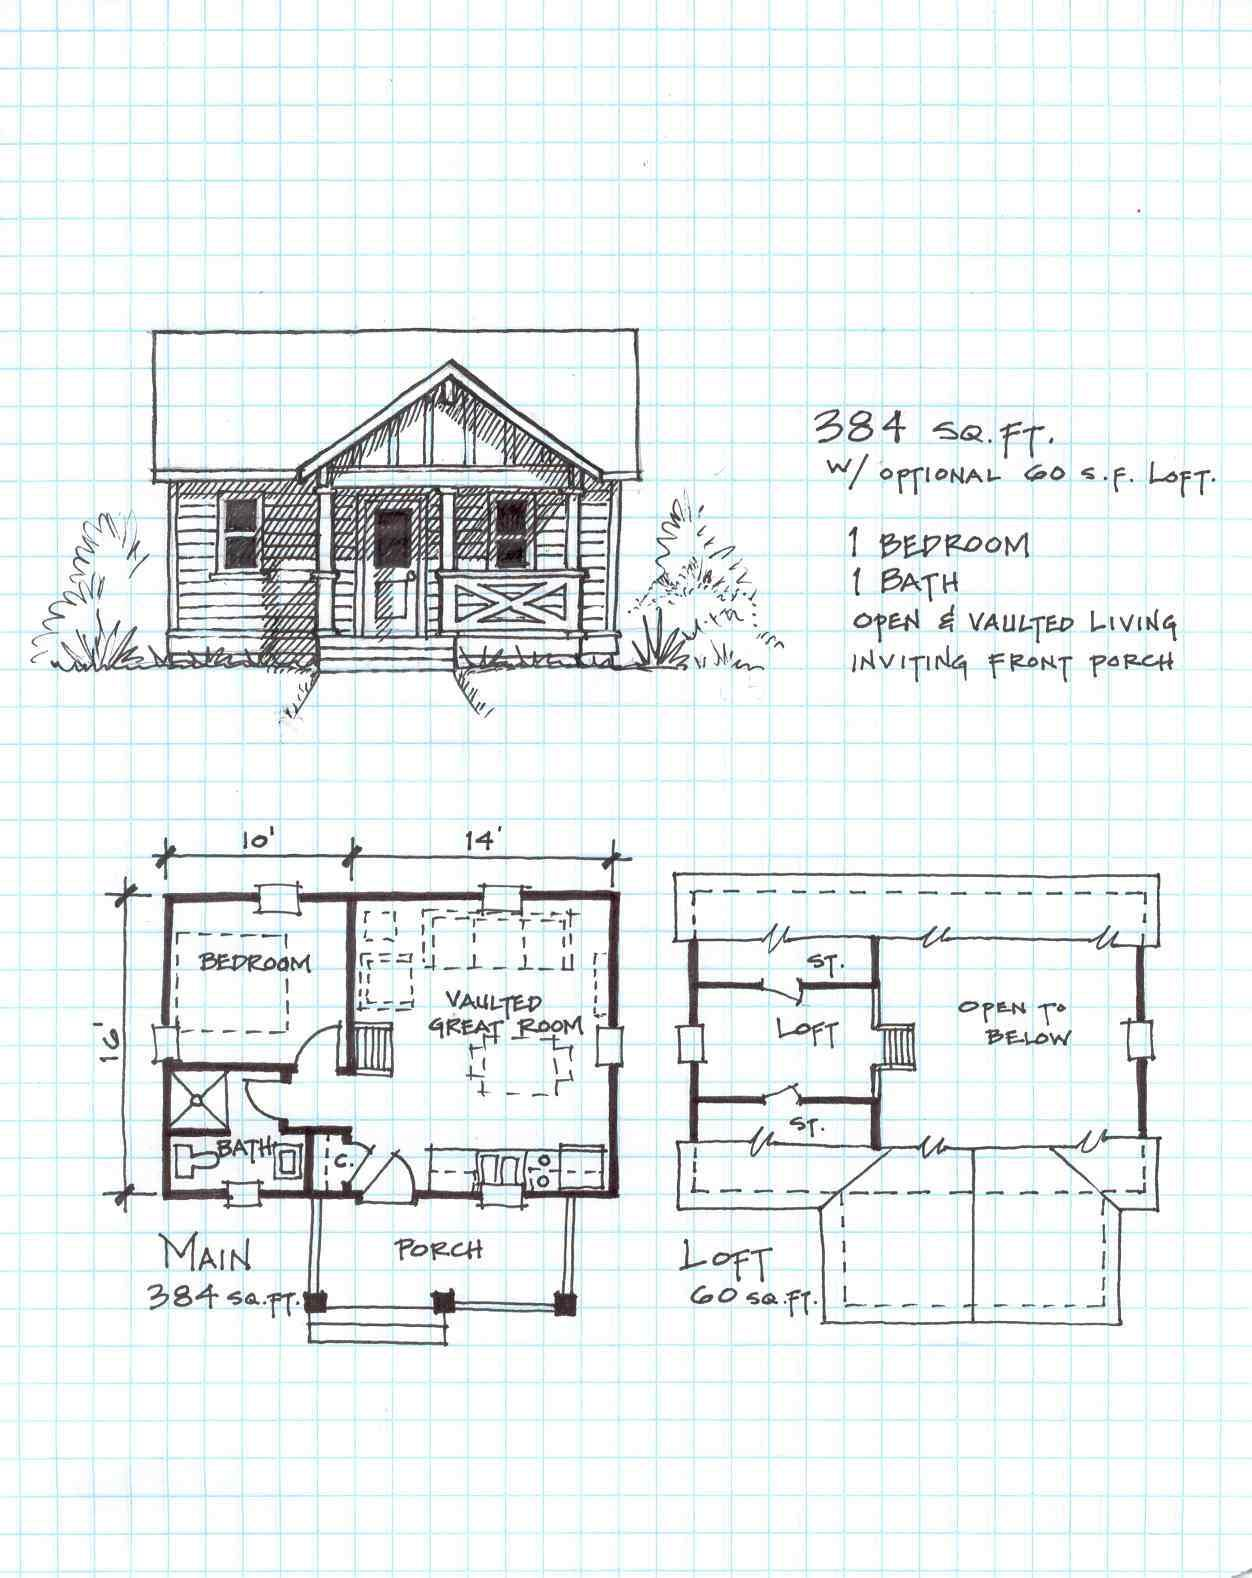 30 Small Cabin Plans For The Homestead Prepper The Survivalist Blog Small Cabin Plans Cabin House Plans Cabin Floor Plans